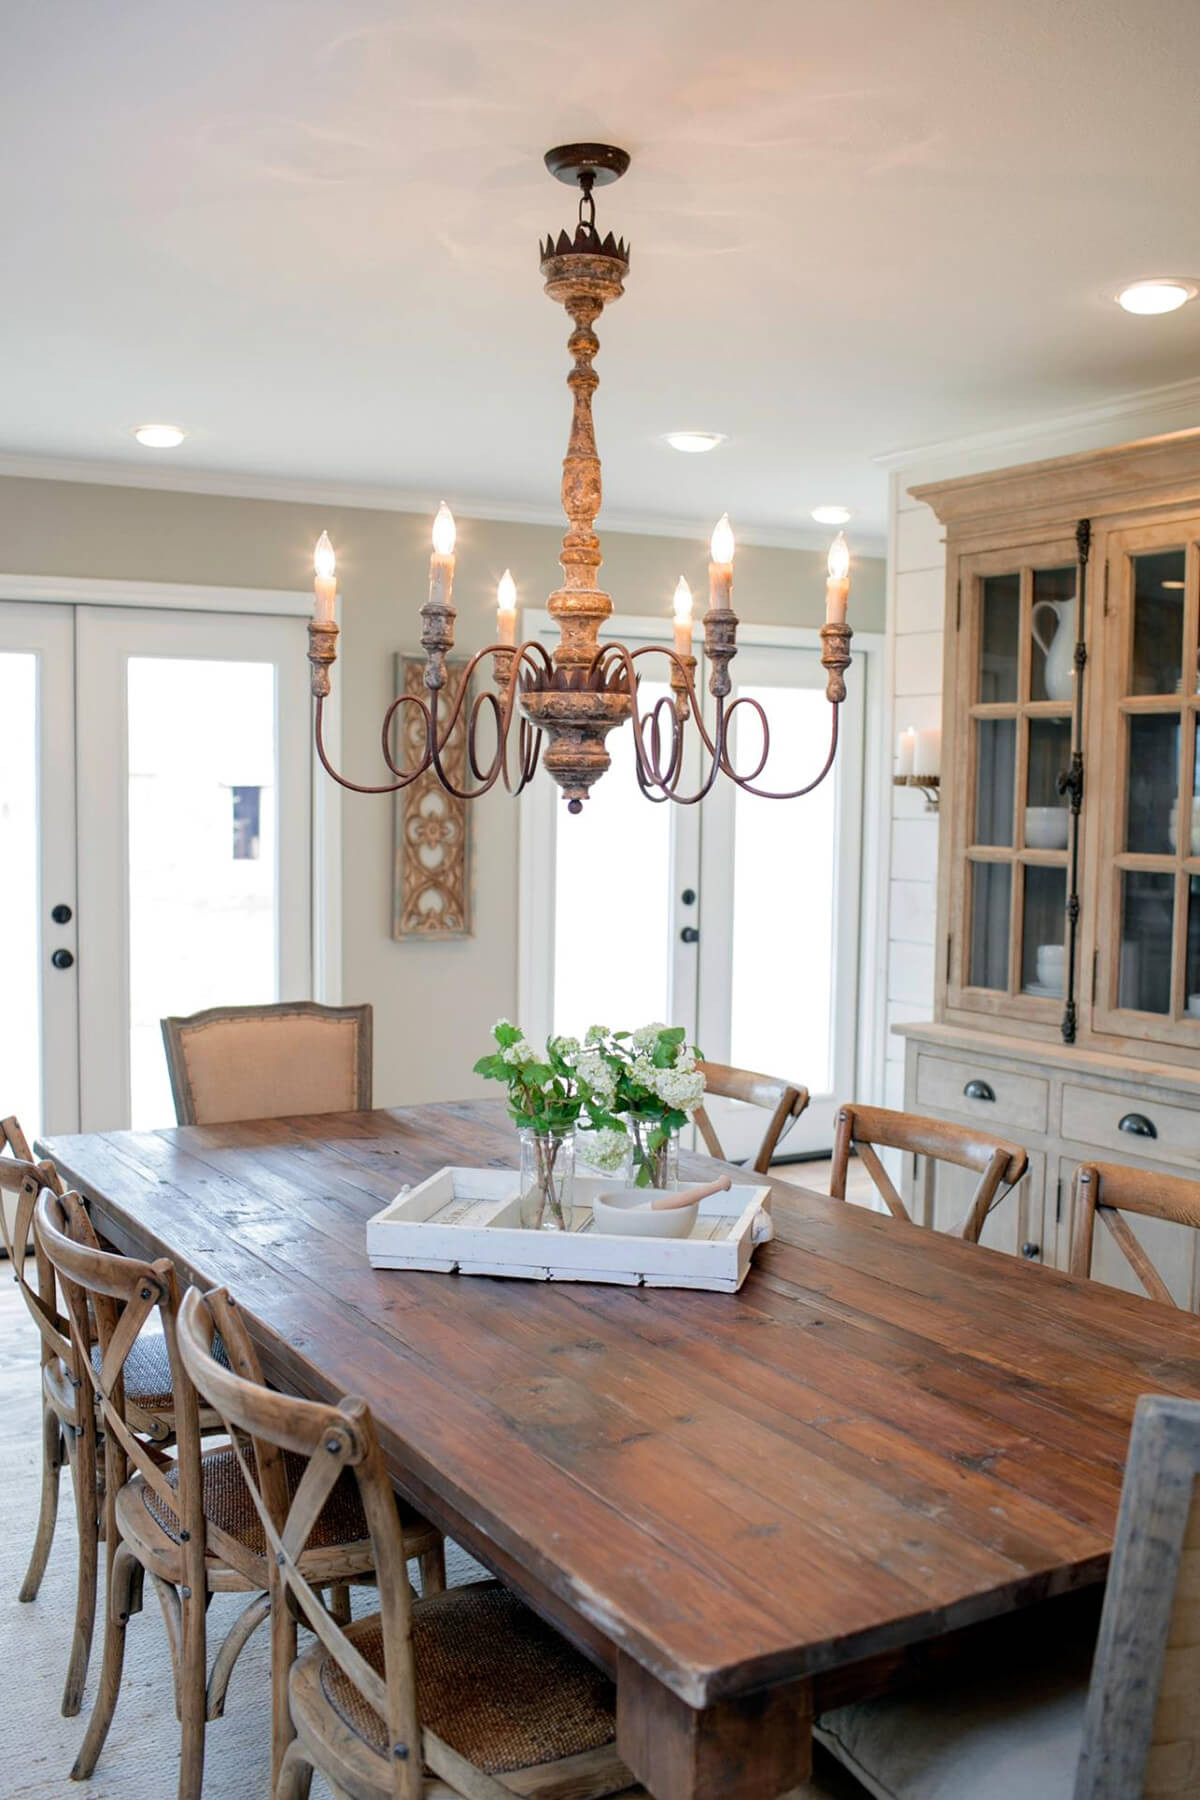 Best ideas about Farmhouse Dining Room Lighting . Save or Pin 36 Best Farmhouse Lighting Ideas and Designs for 2019 Now.